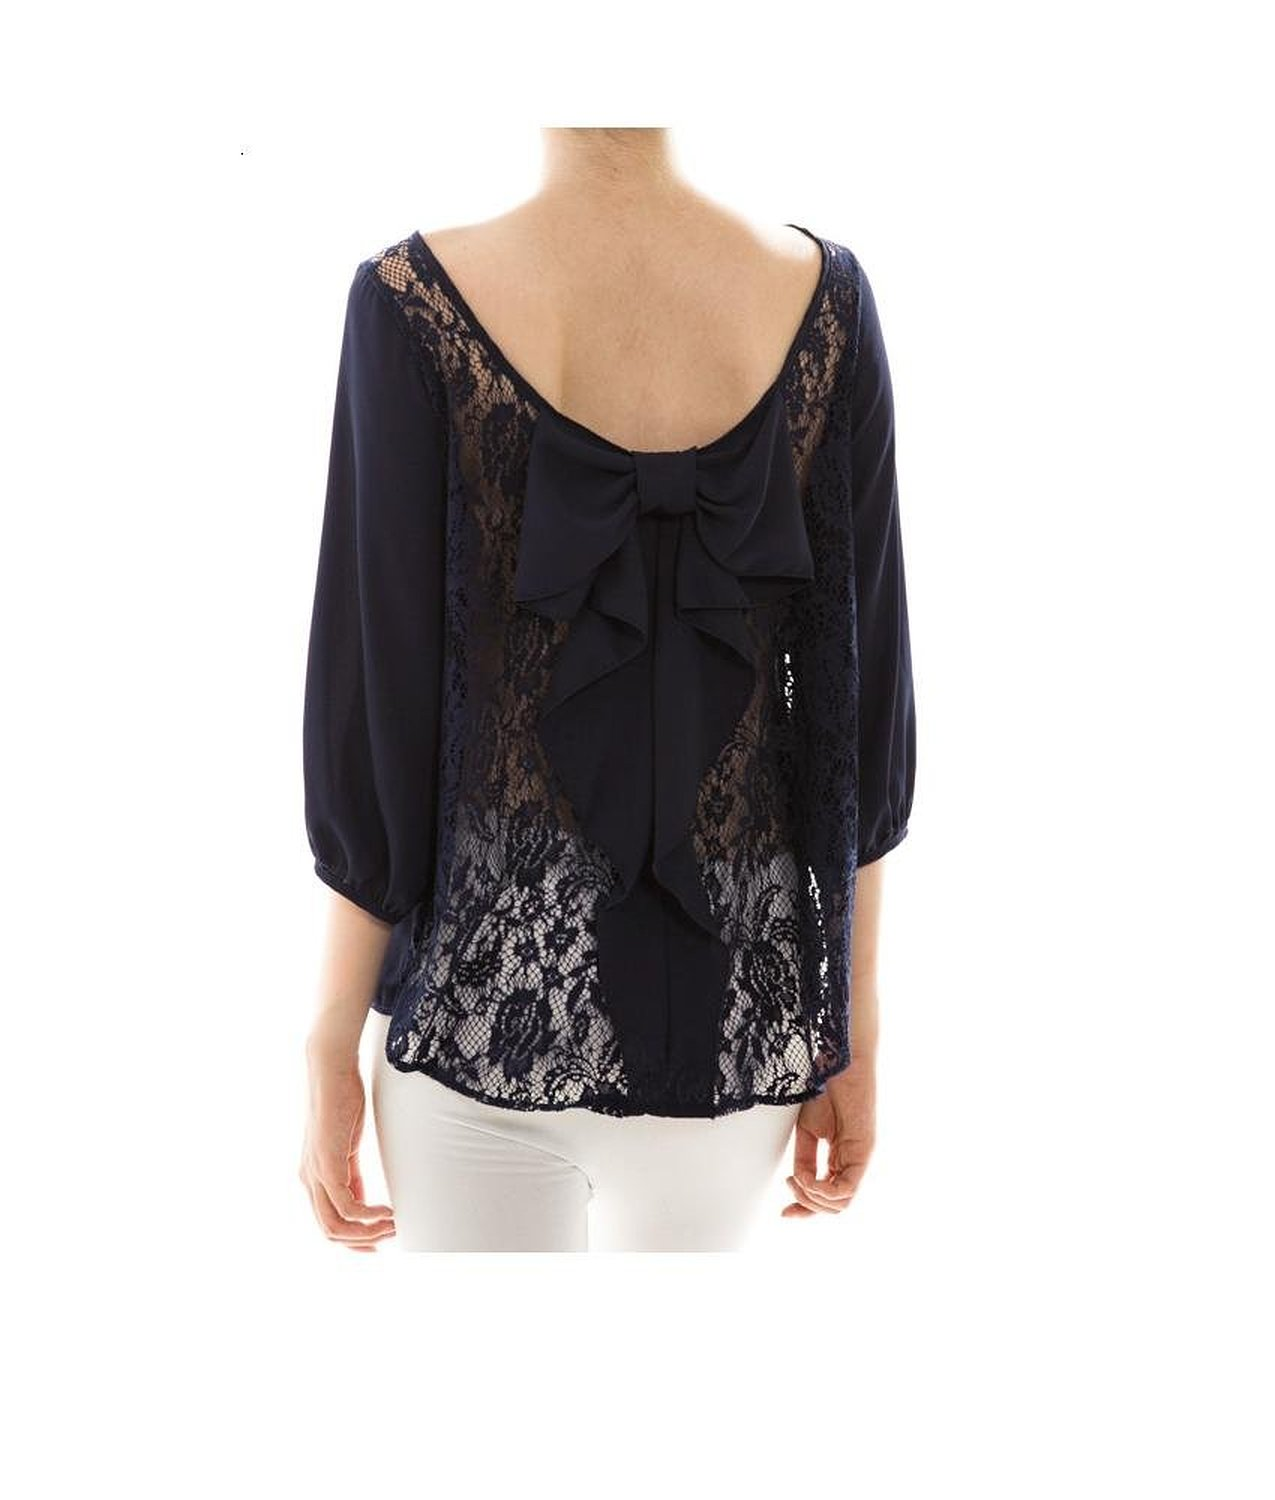 Bow Back Lace Detail Chiffon Top at Amazon Women's Clothing store: